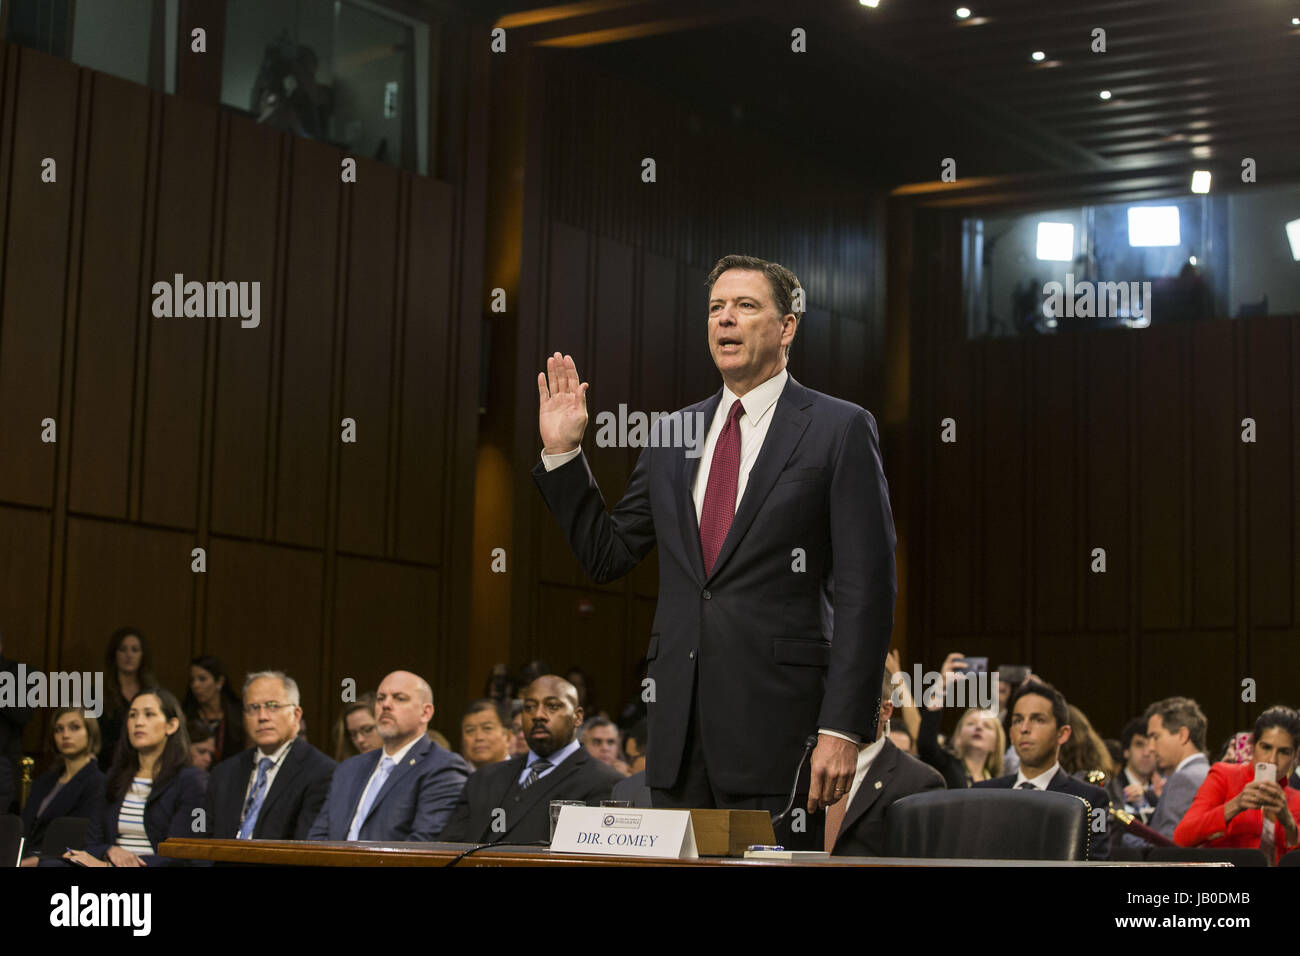 Washington, District Of Columbia, USA. 8. Juni 2017. Ehemalige FBI-Direktor JAMES COMEY wird vor seiner Aussage Stockbild